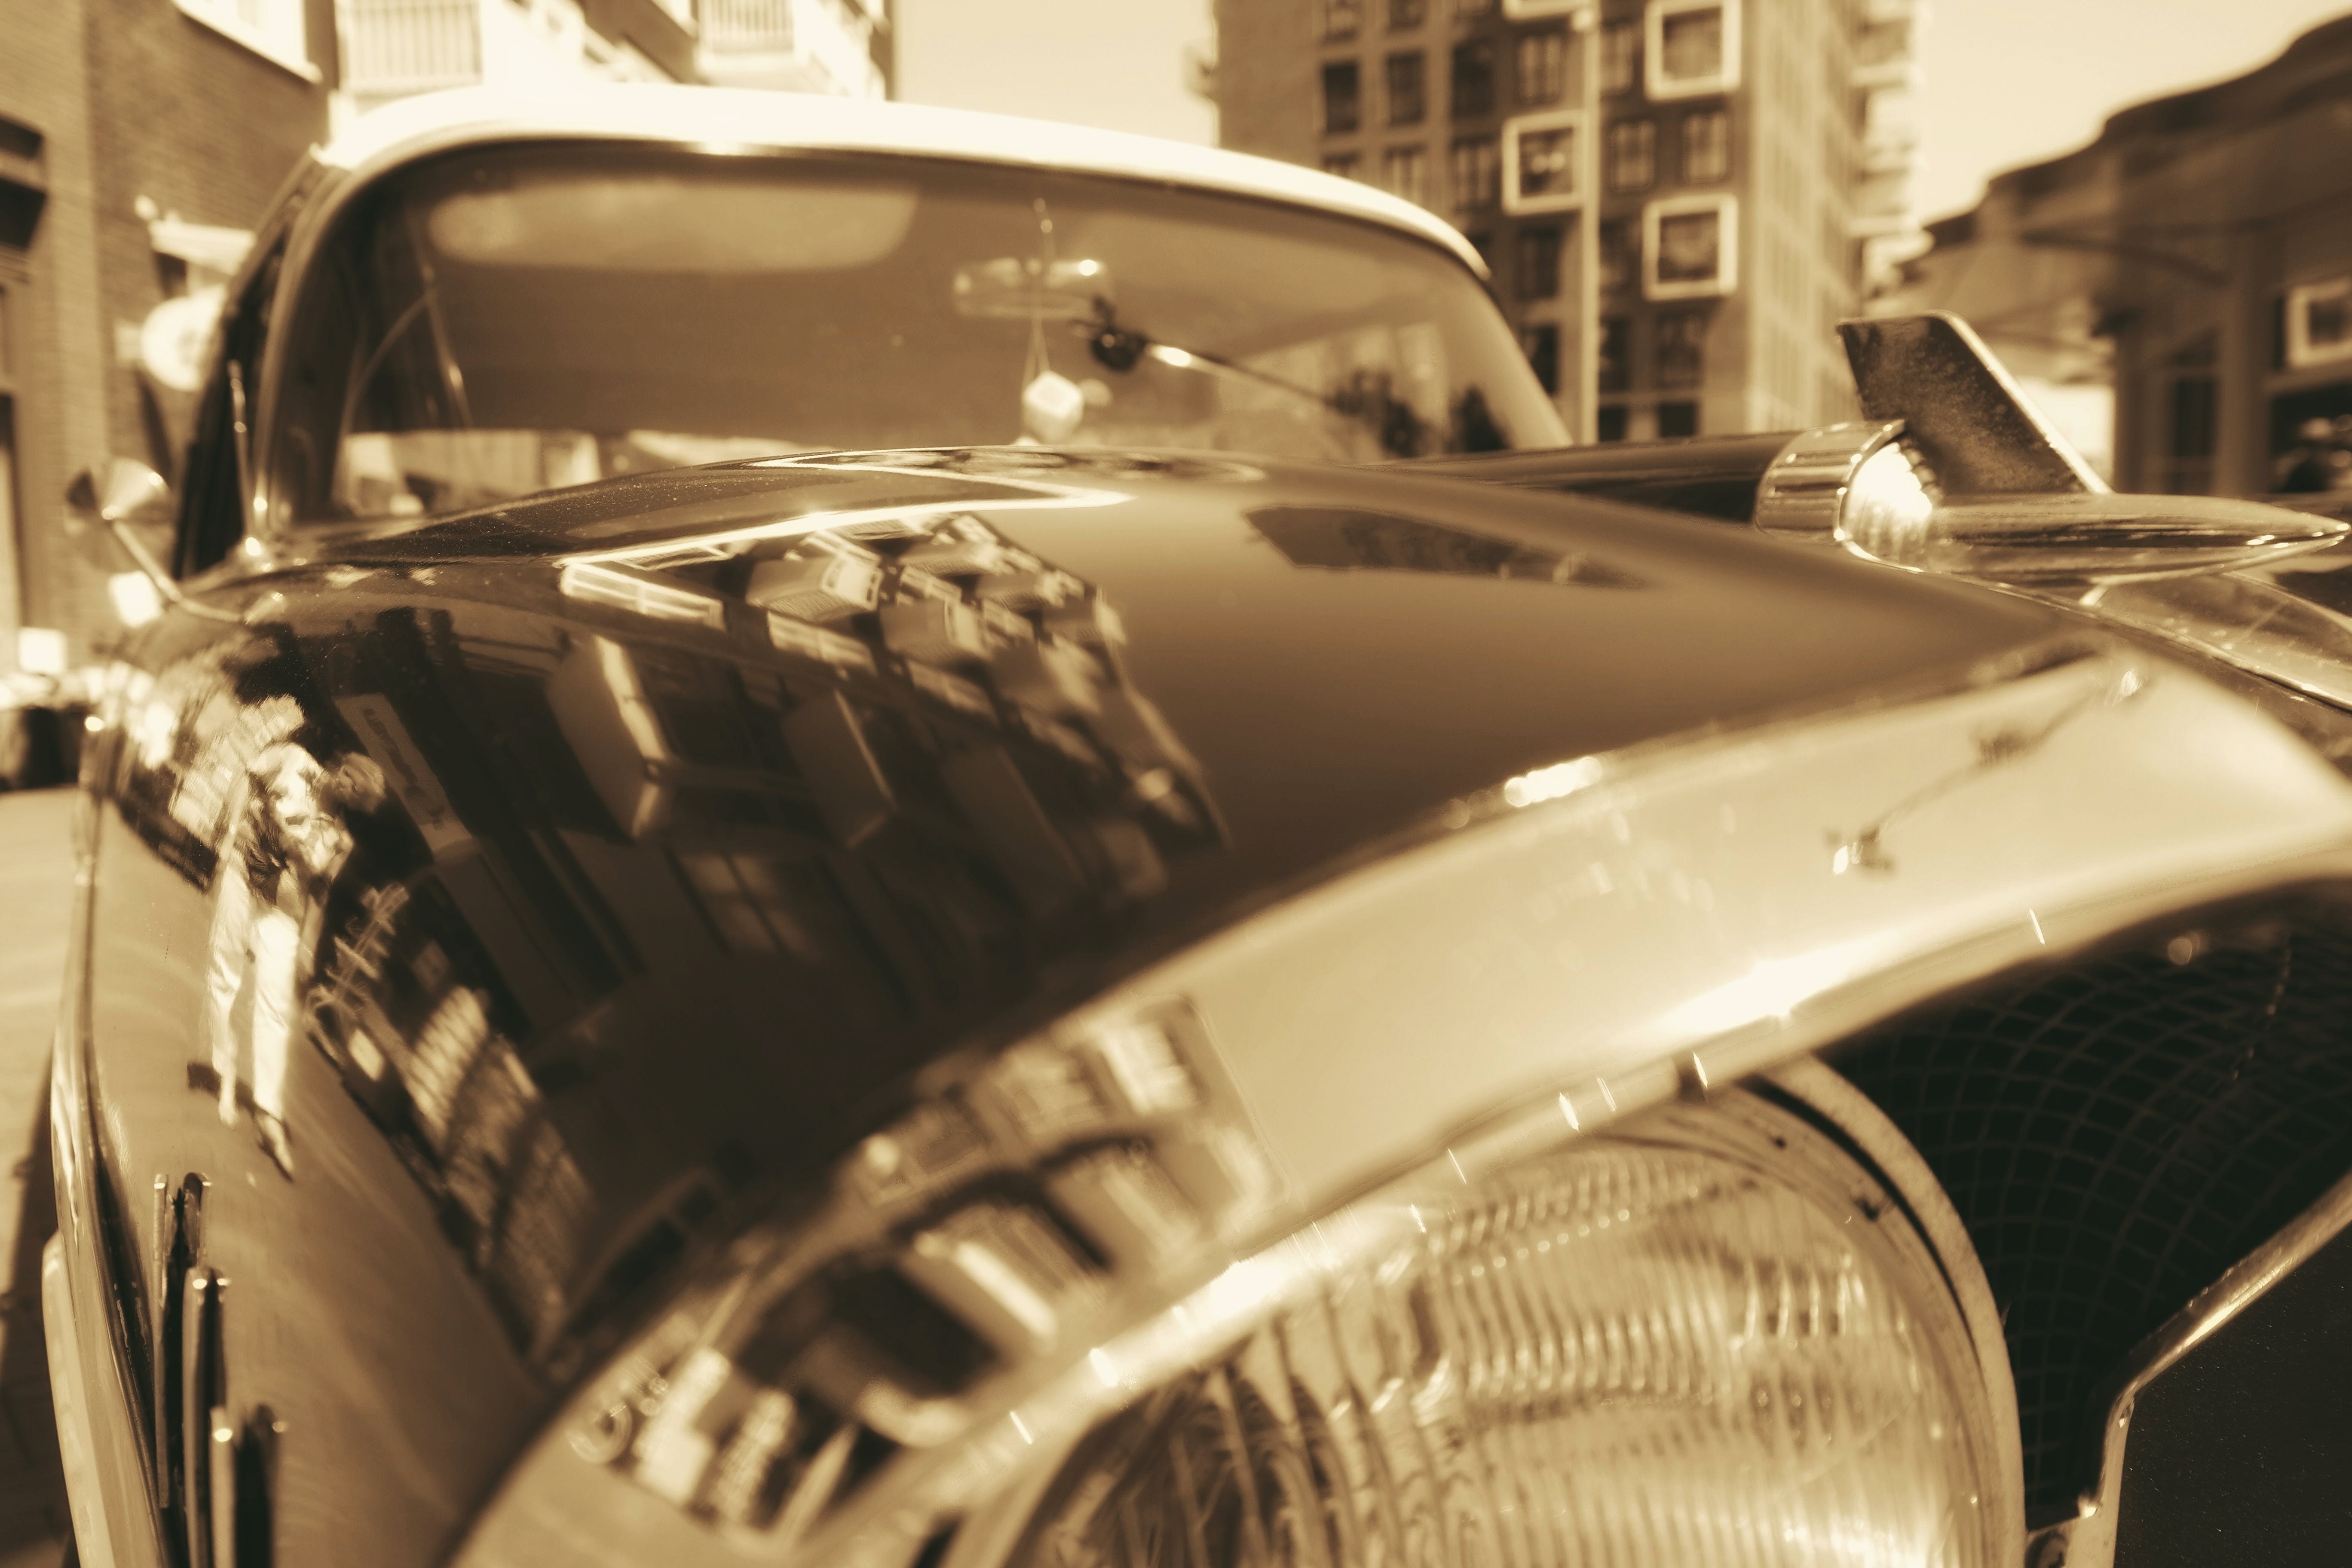 Free stock photo of cars, close-up view, sepia, mirror image